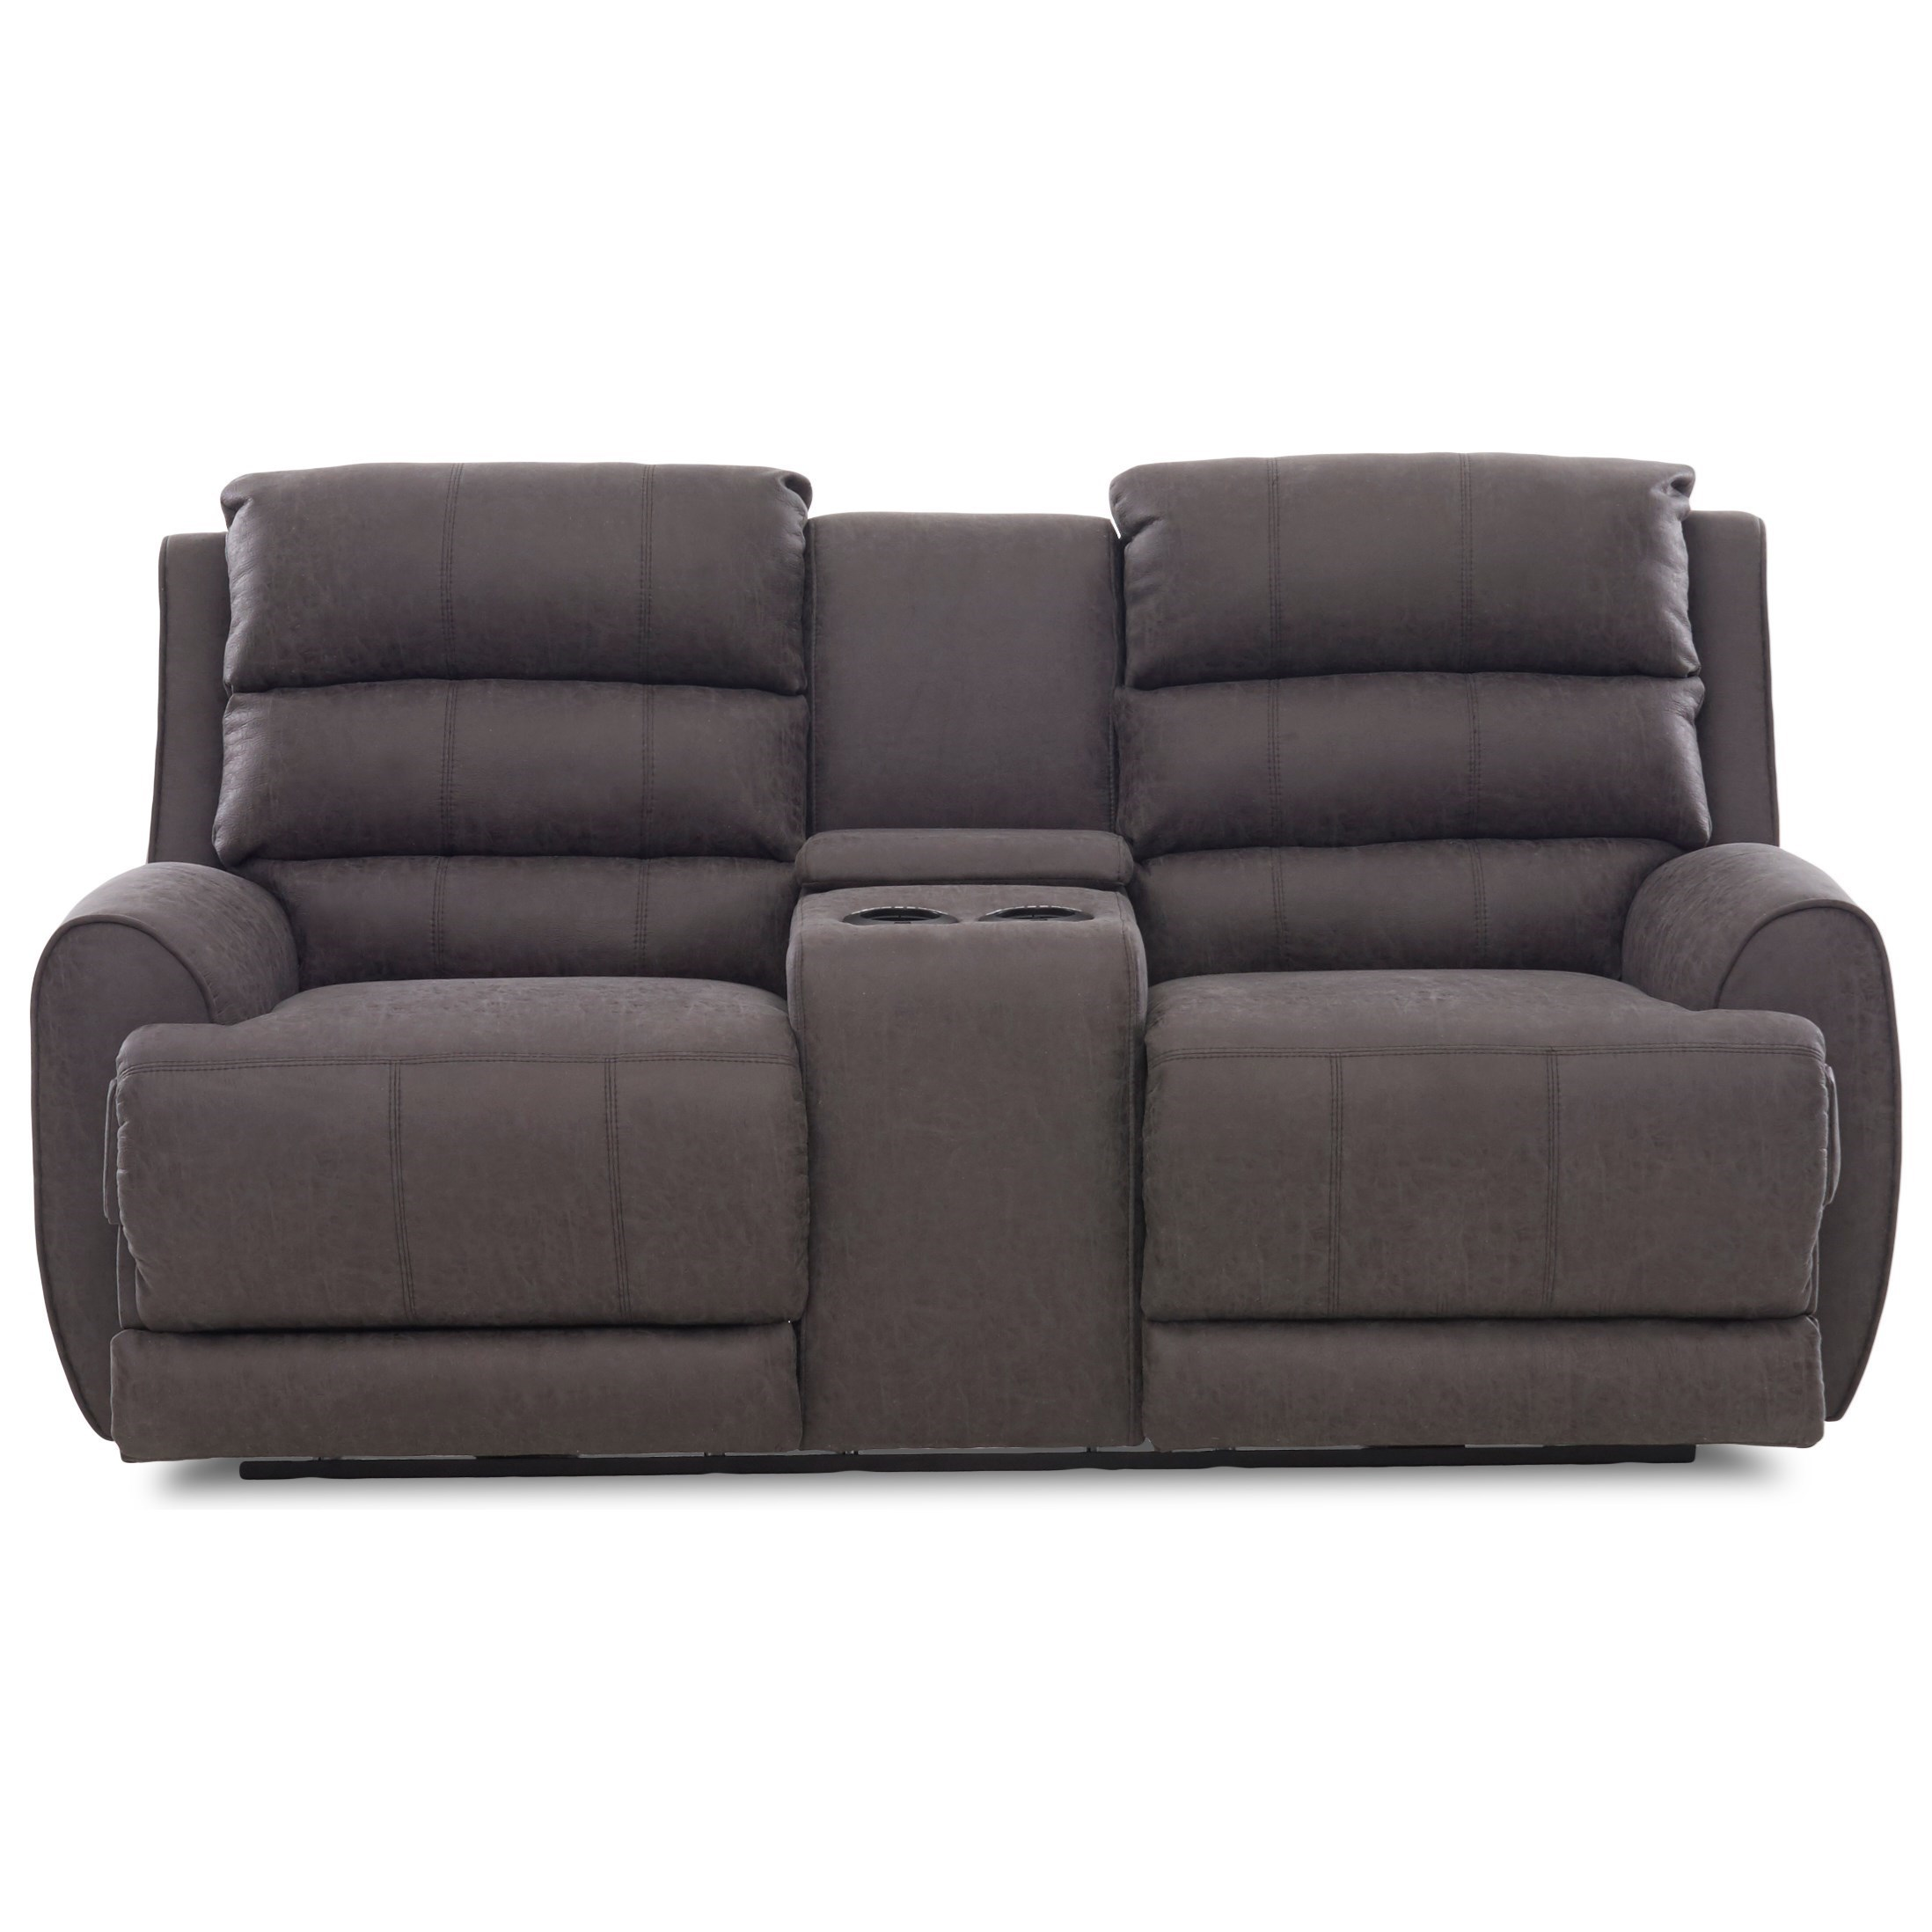 klaussner grand power reclining sofa beds for small apartment gleeson contemporary console loveseat with gleesonpower love w pwr head